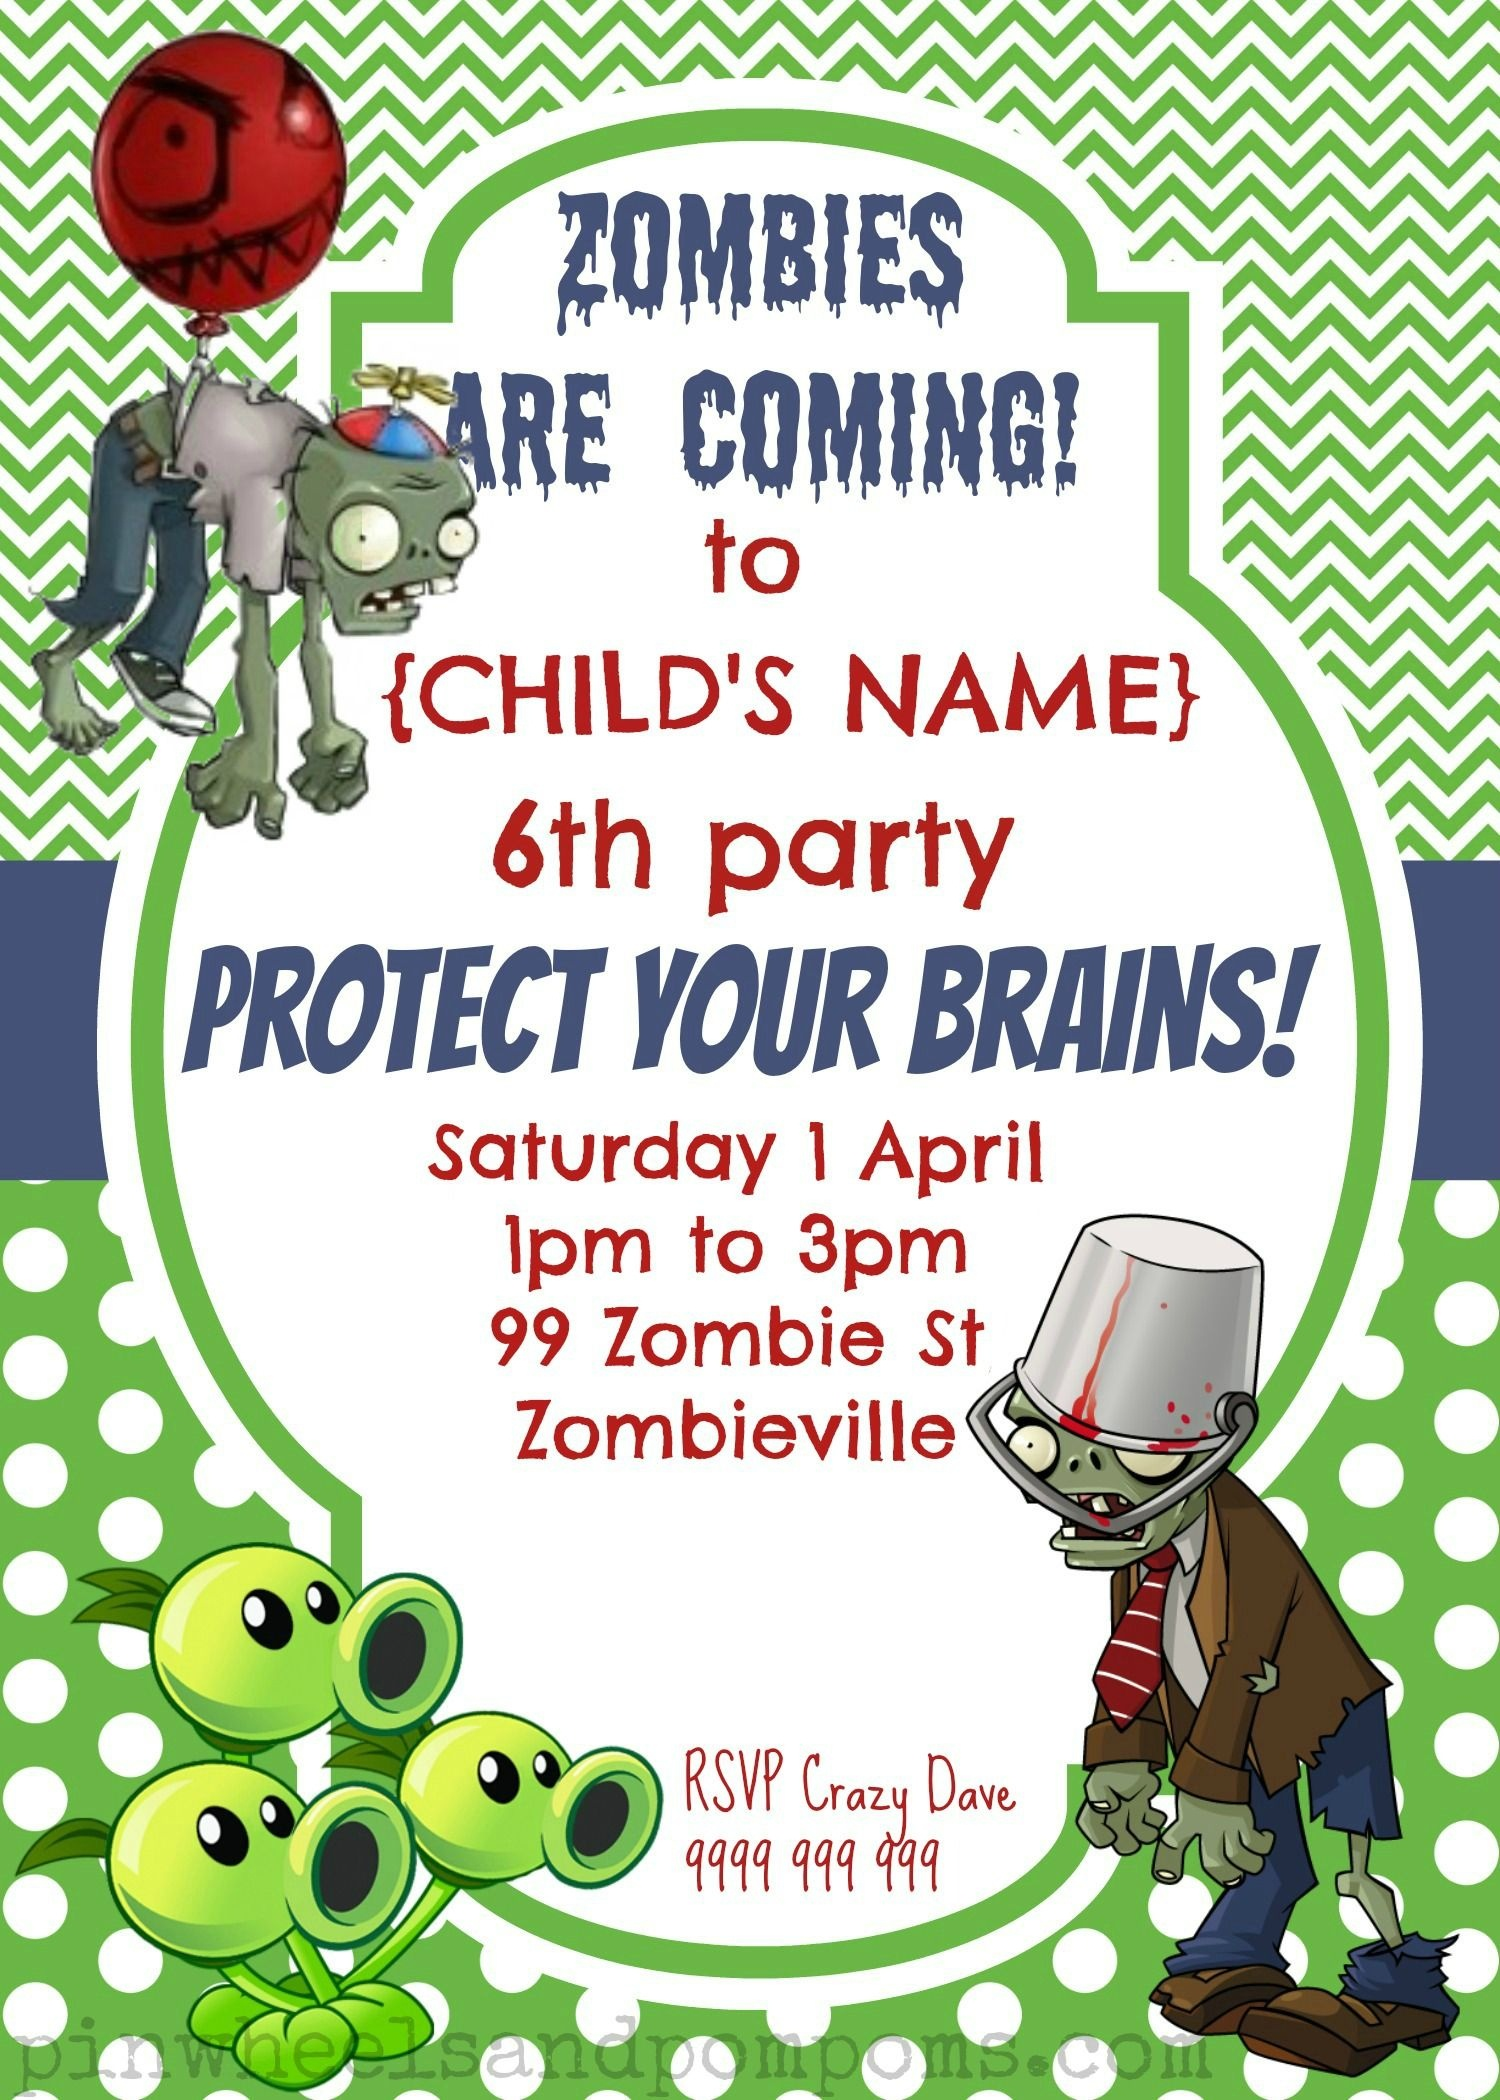 Image Result For Free Printables Plants Vs Zombies | Zombies Vs - Plants Vs Zombies Free Printable Invitations